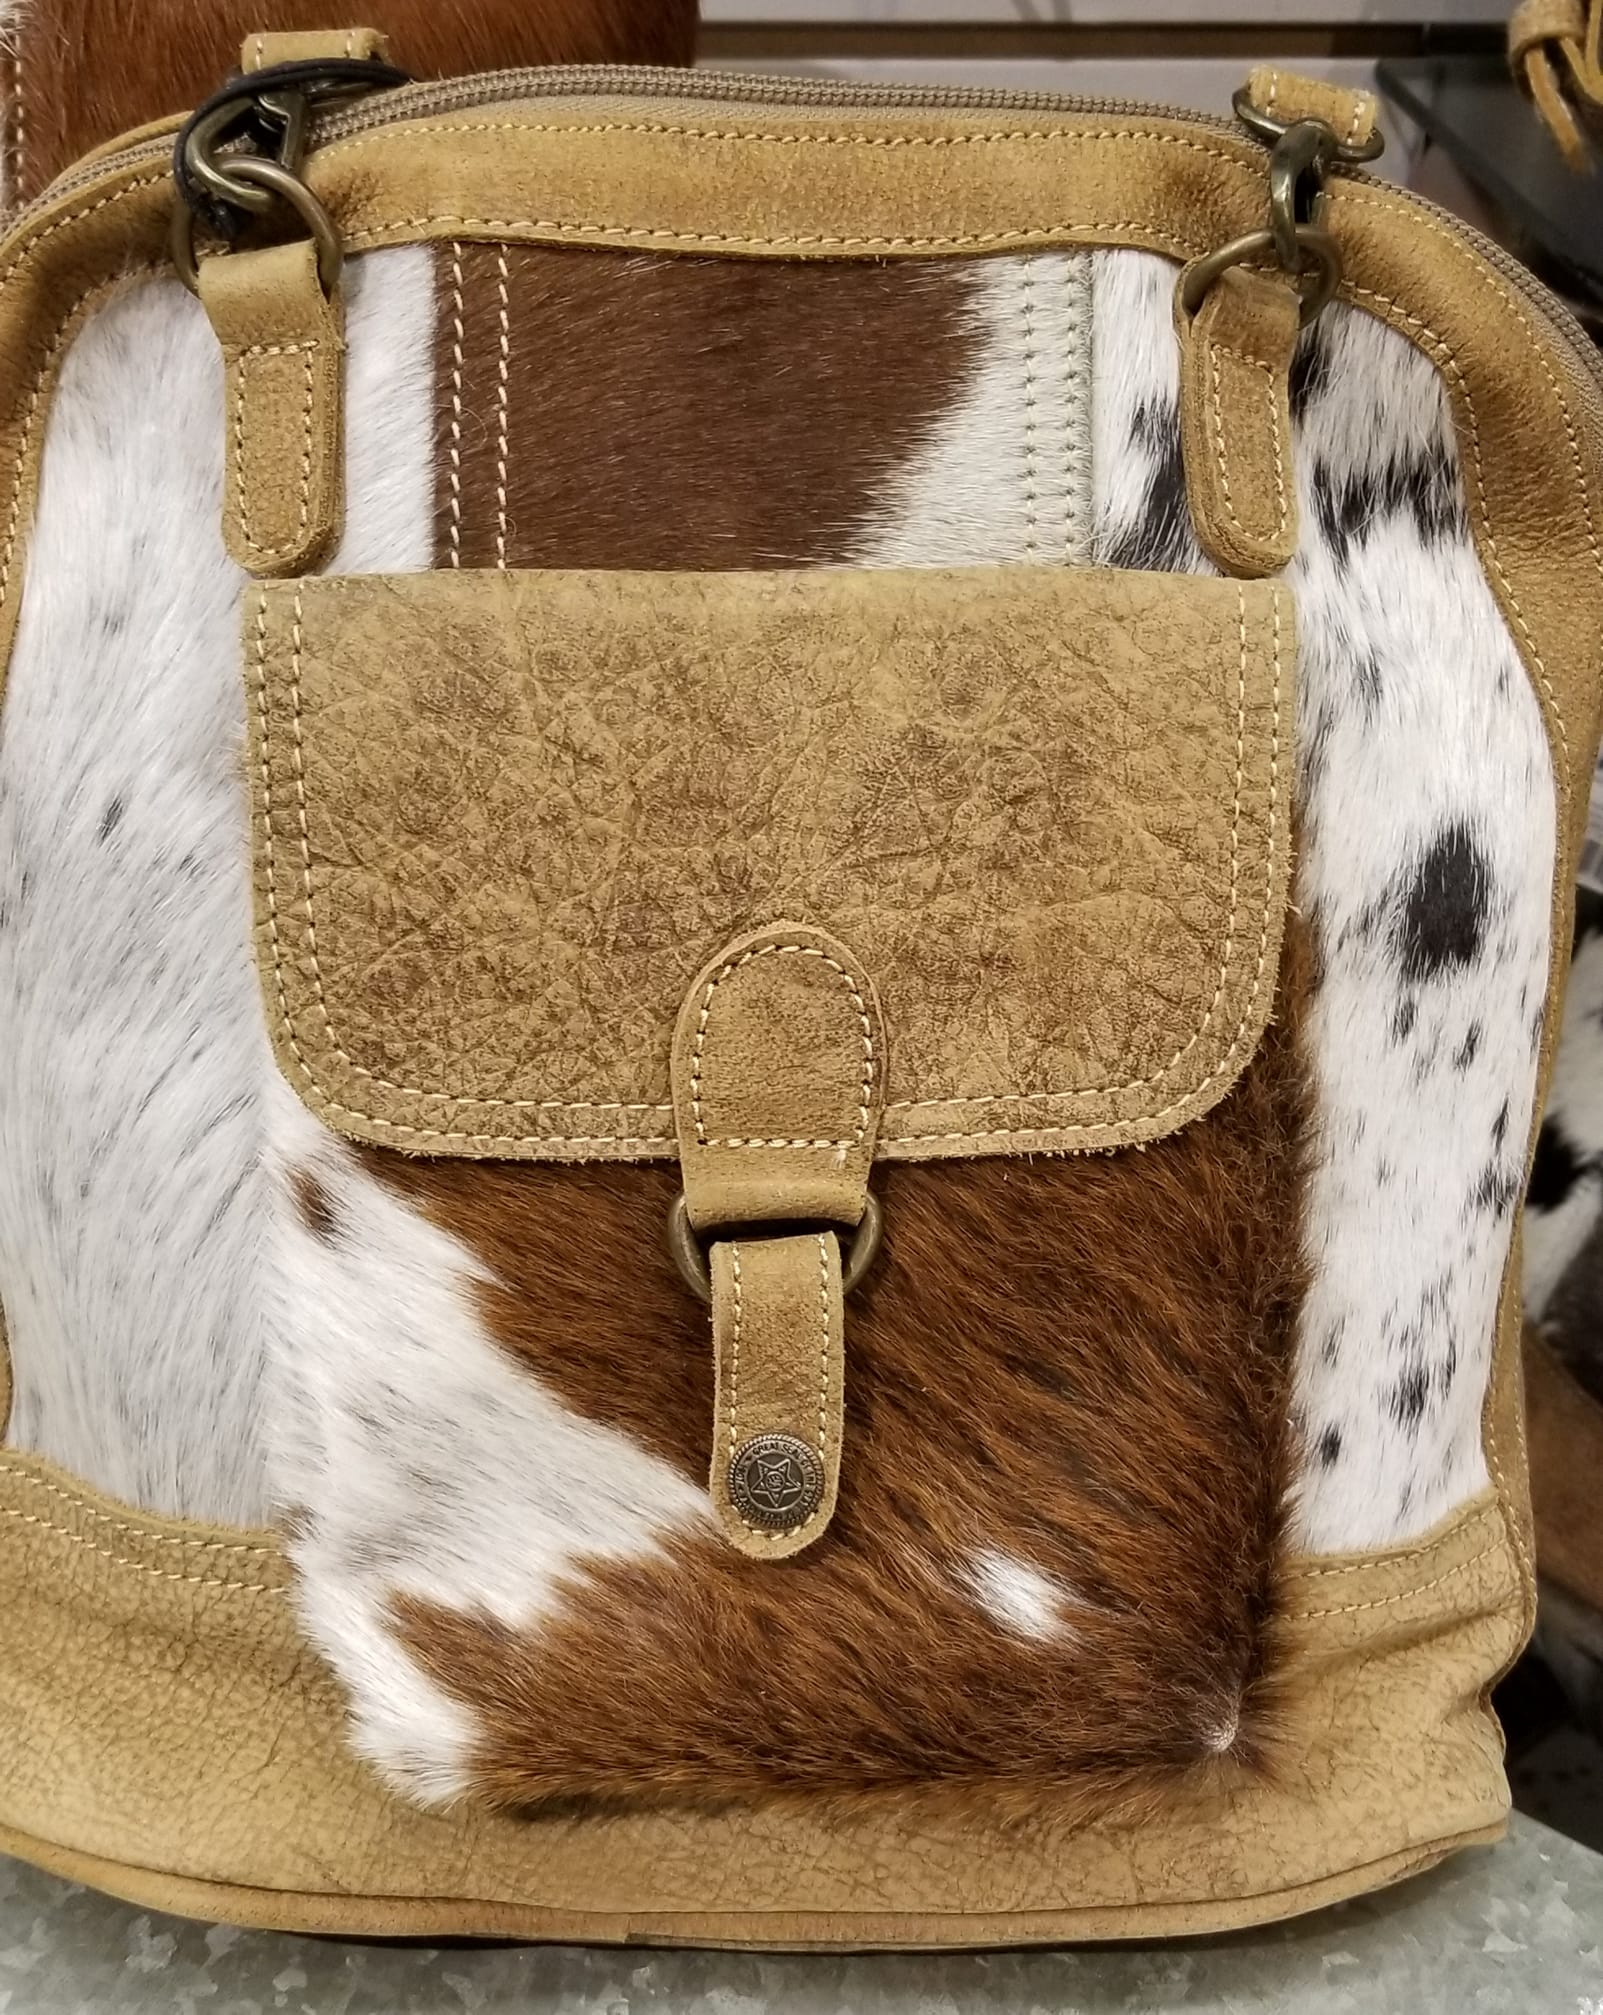 SimplyBlooming_cowhide bag